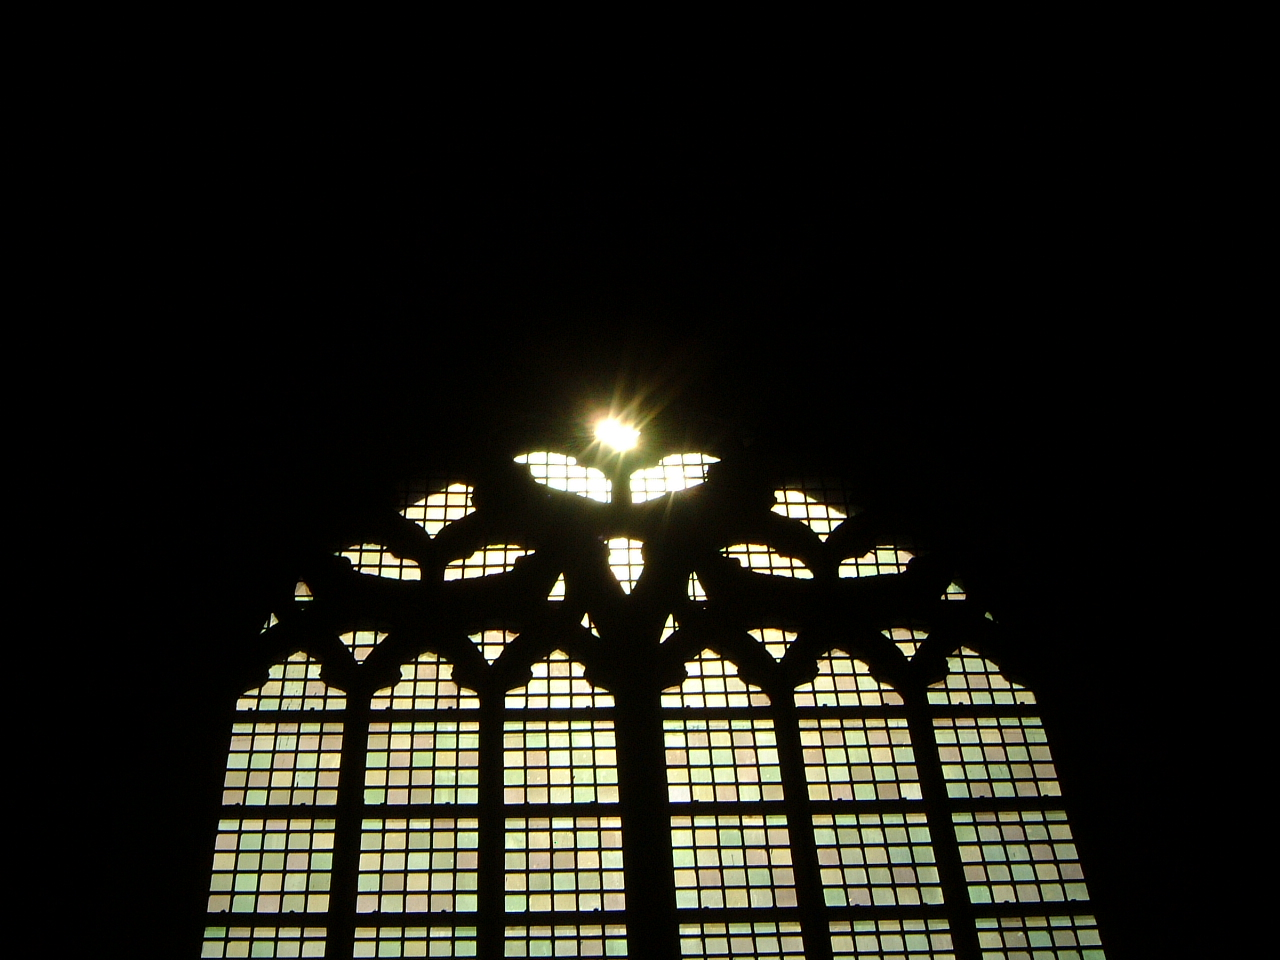 maartent church glass window stained high domed light shining image